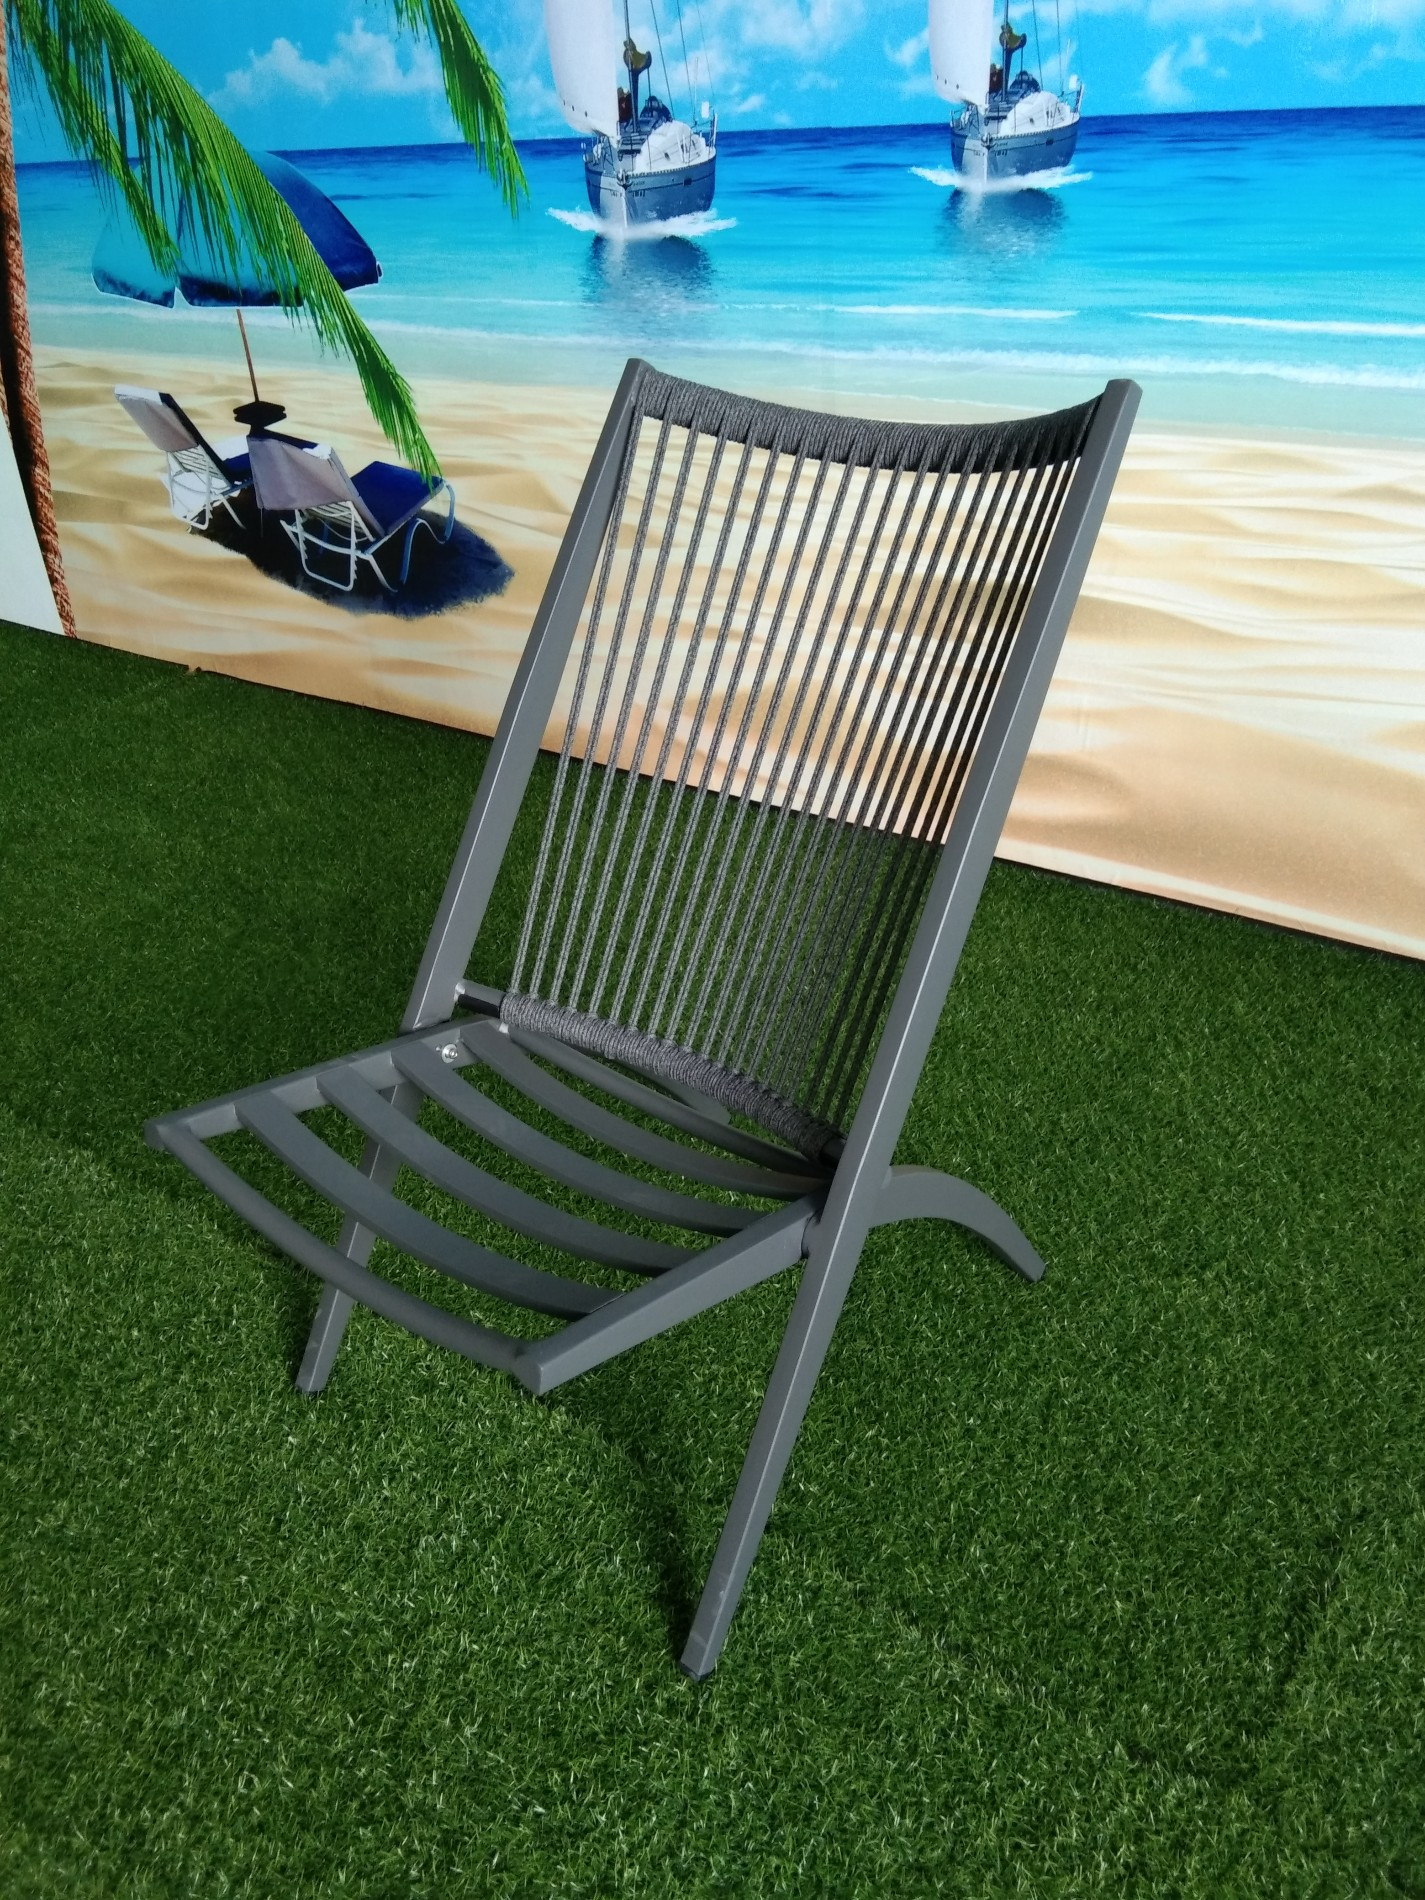 aluminum folding chairs outdoor chair Manufacturers, aluminum folding chairs outdoor chair Factory, Supply aluminum folding chairs outdoor chair